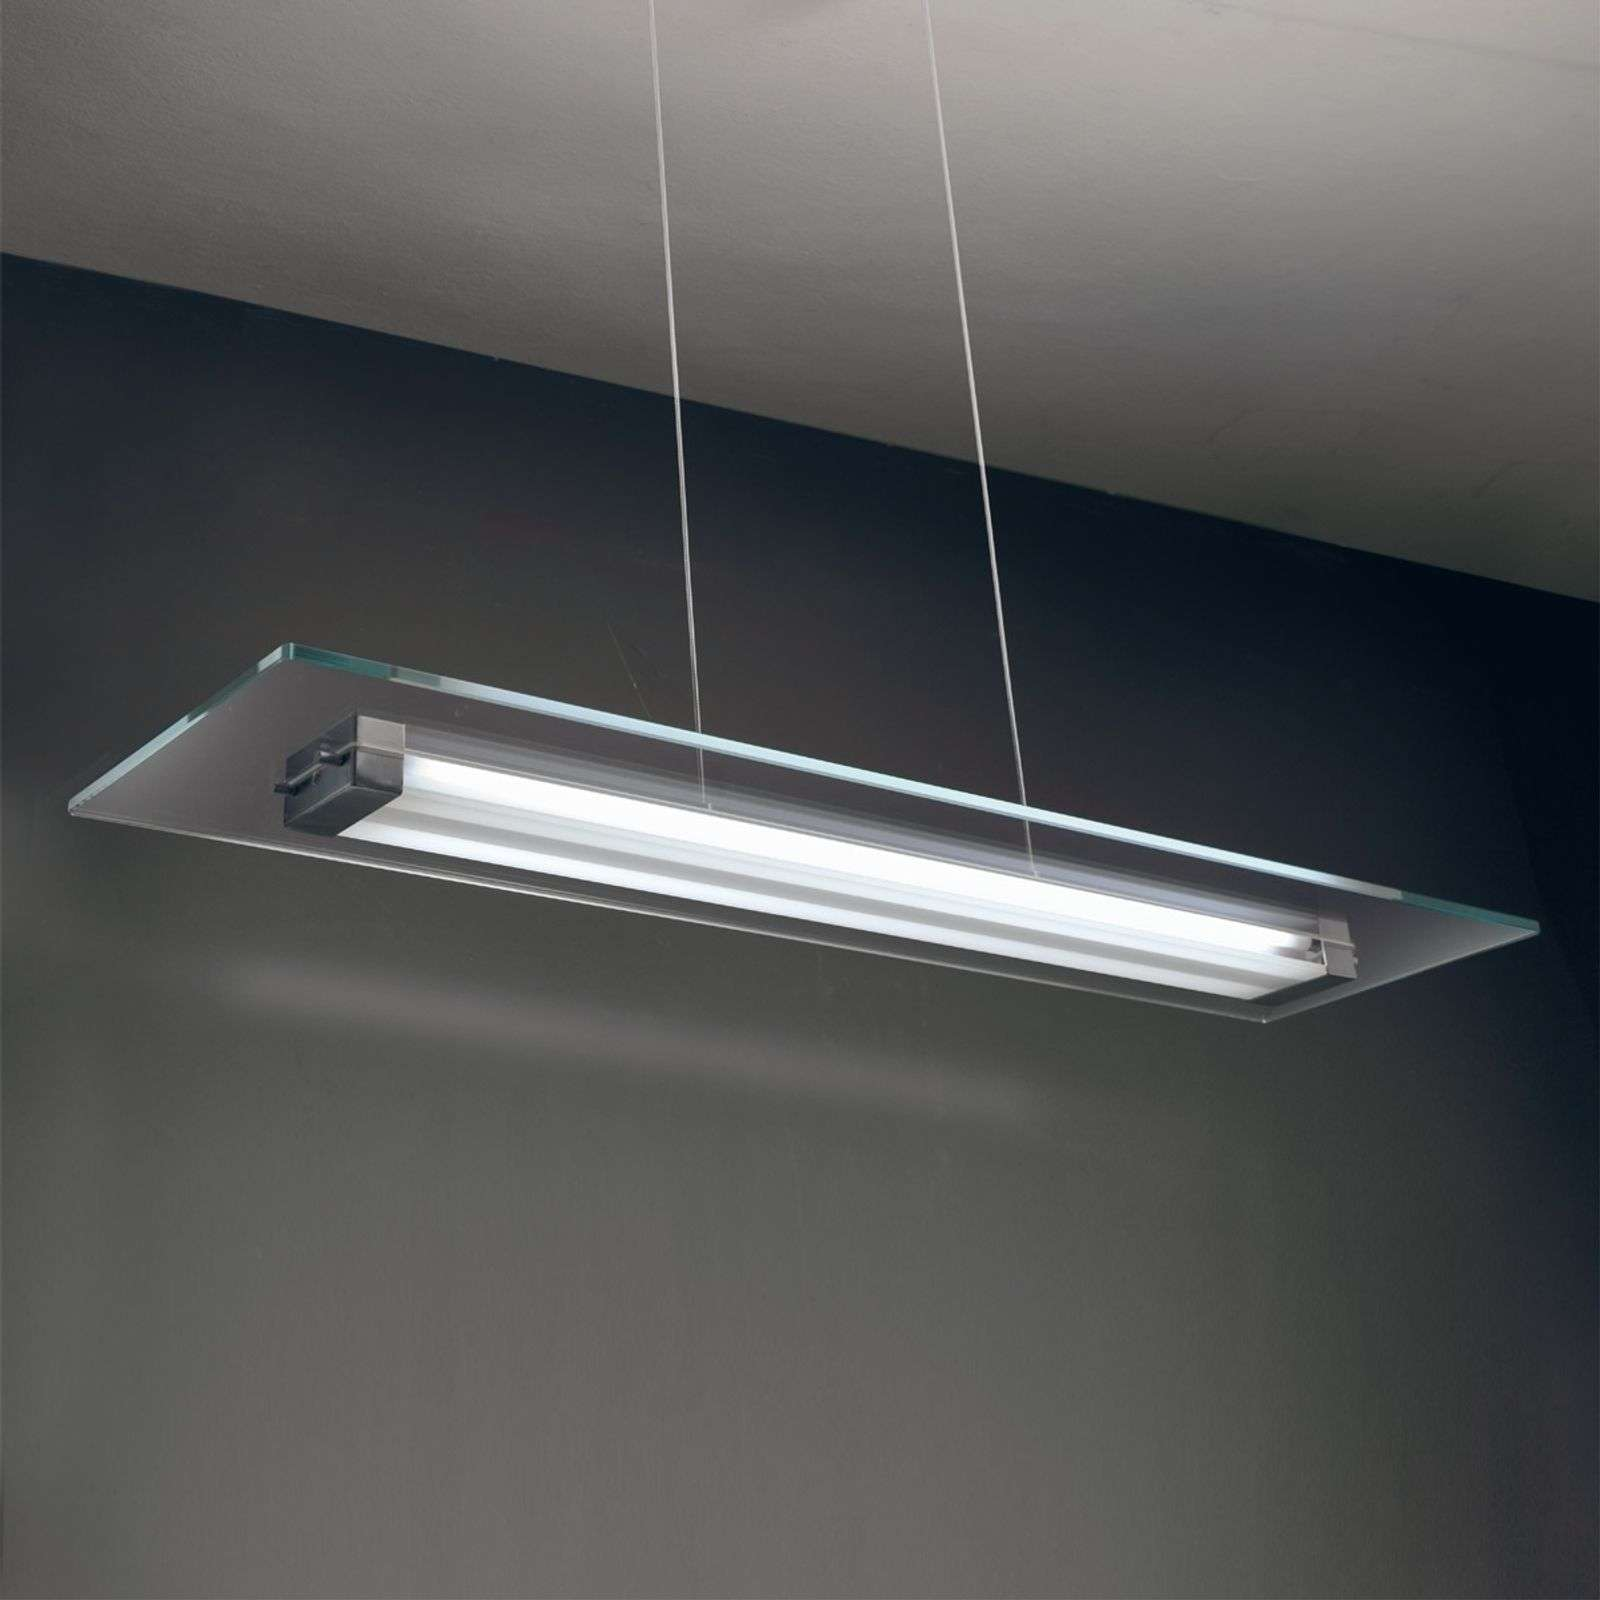 Exclusieve hanglamp Fly